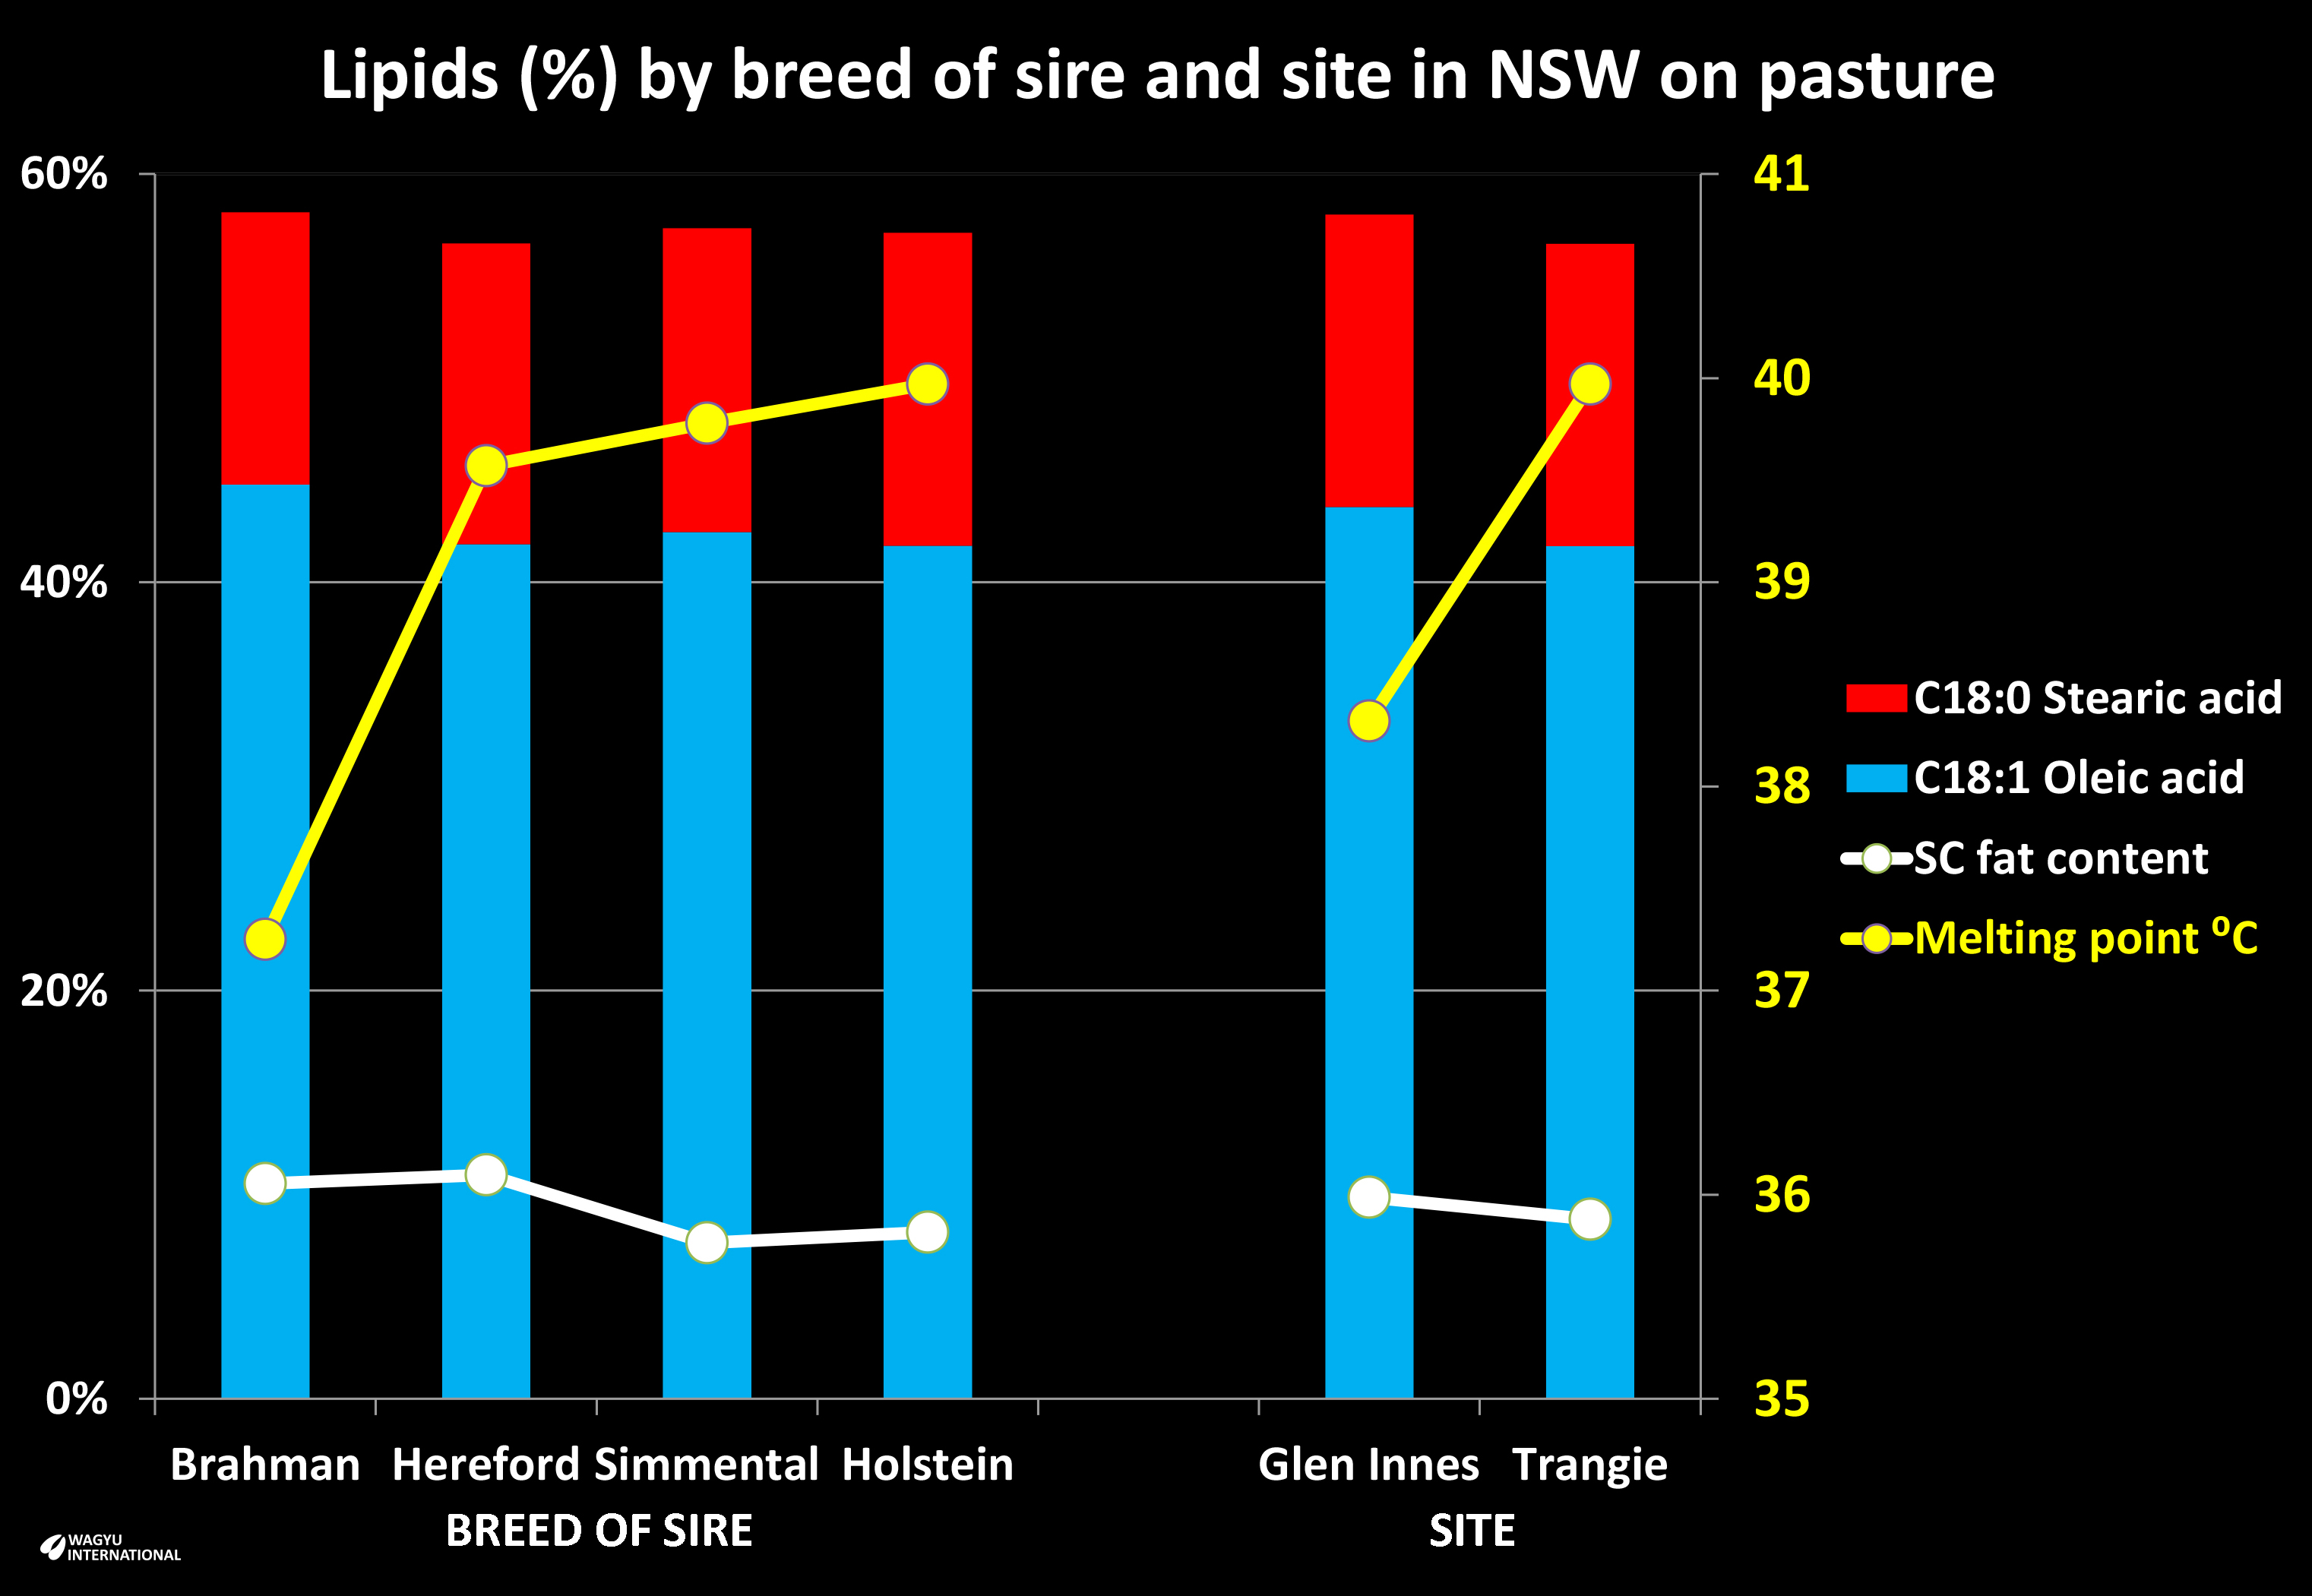 Chrat of oleic and stearic fat content and melting point by breed and site in NSW from steers